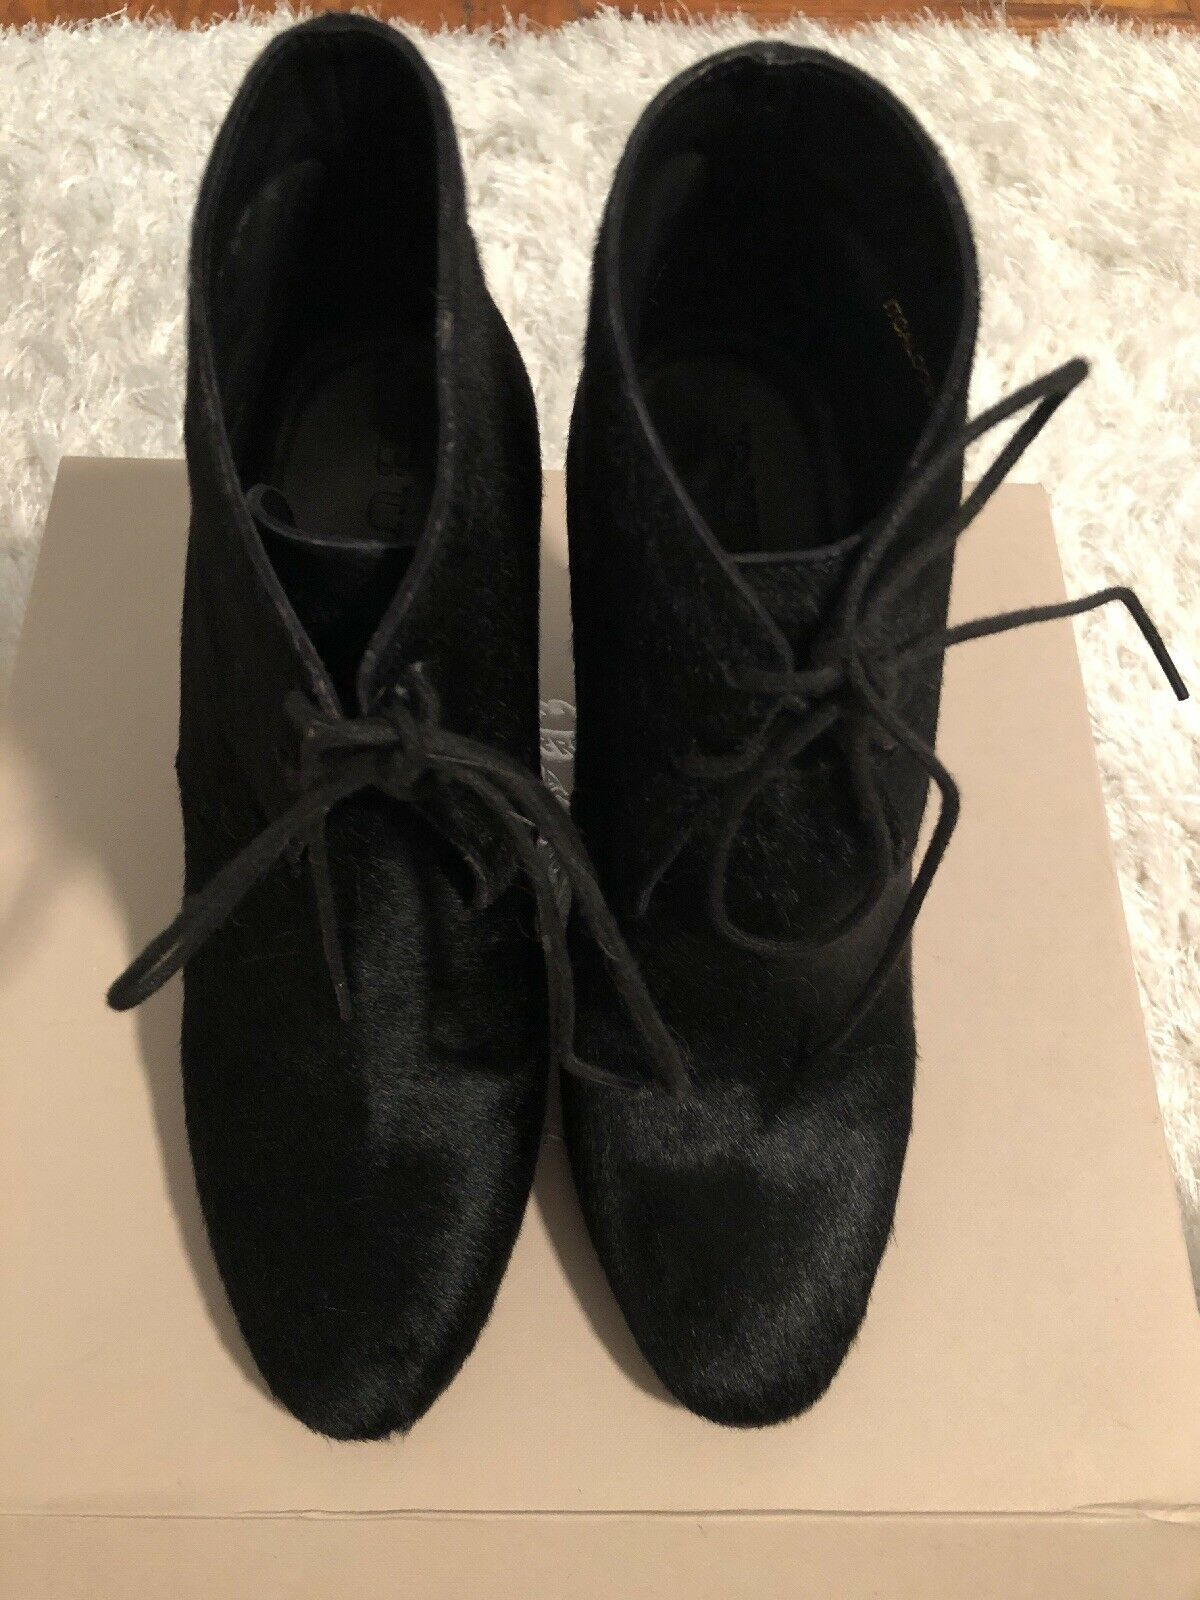 Man's/Woman's Burberry booties black size 38 New product excellent Clearance sale